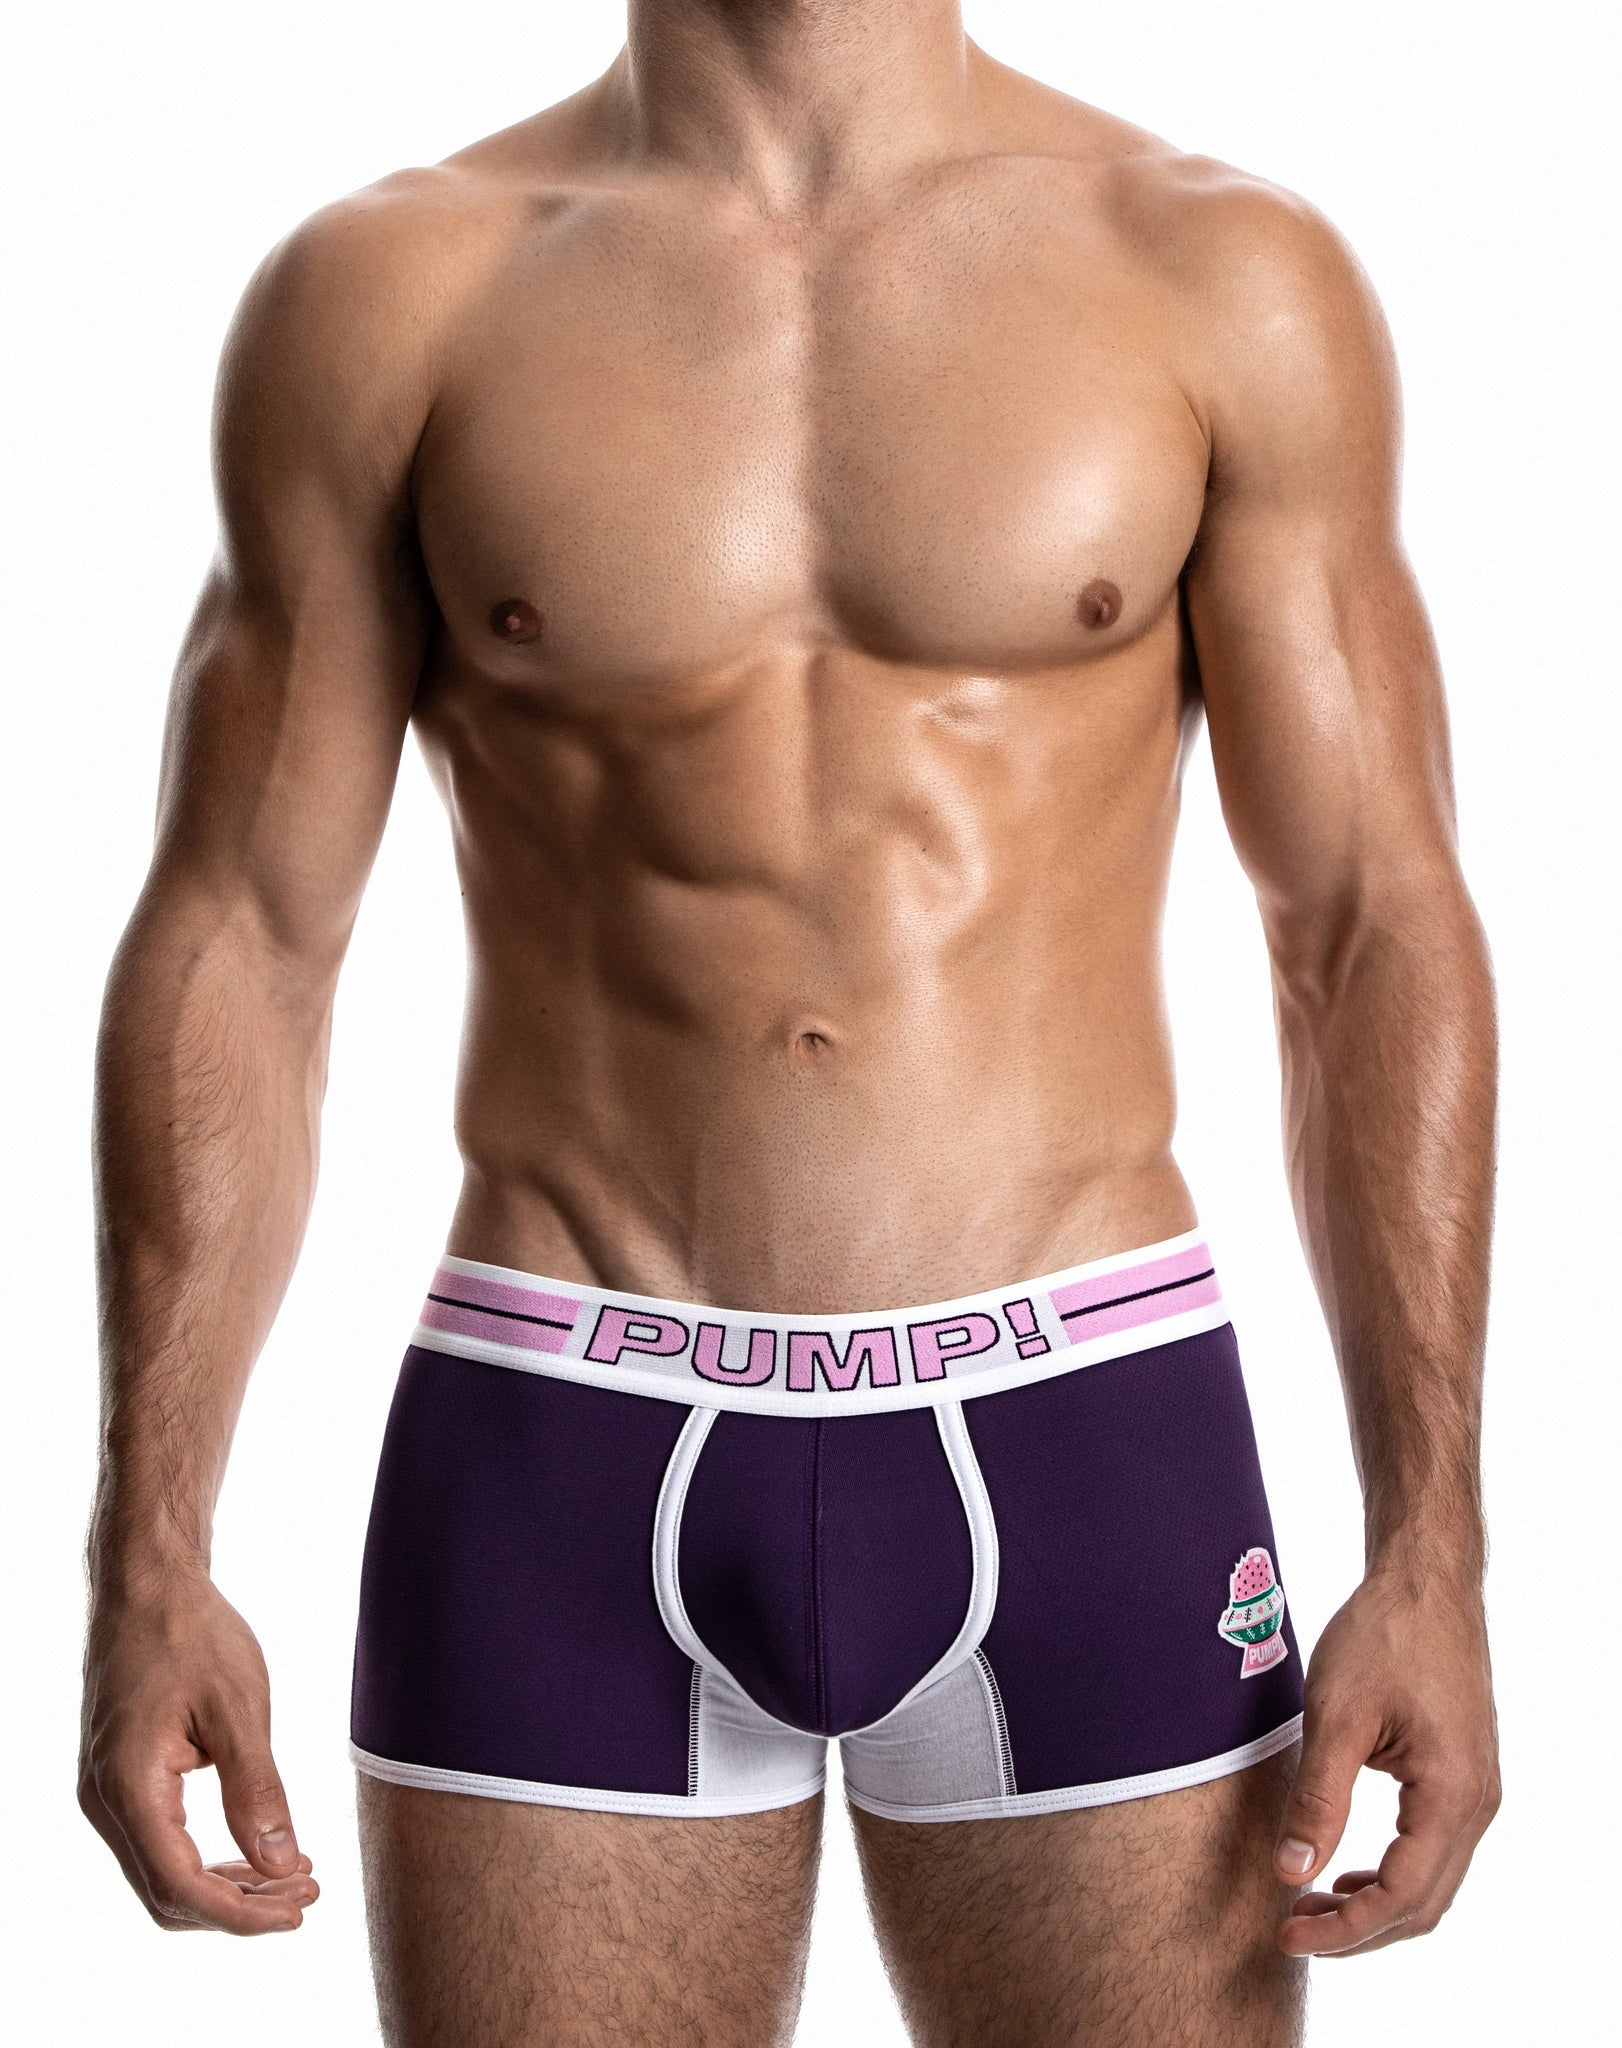 PUMP! SpaceCandy Purple Trunk